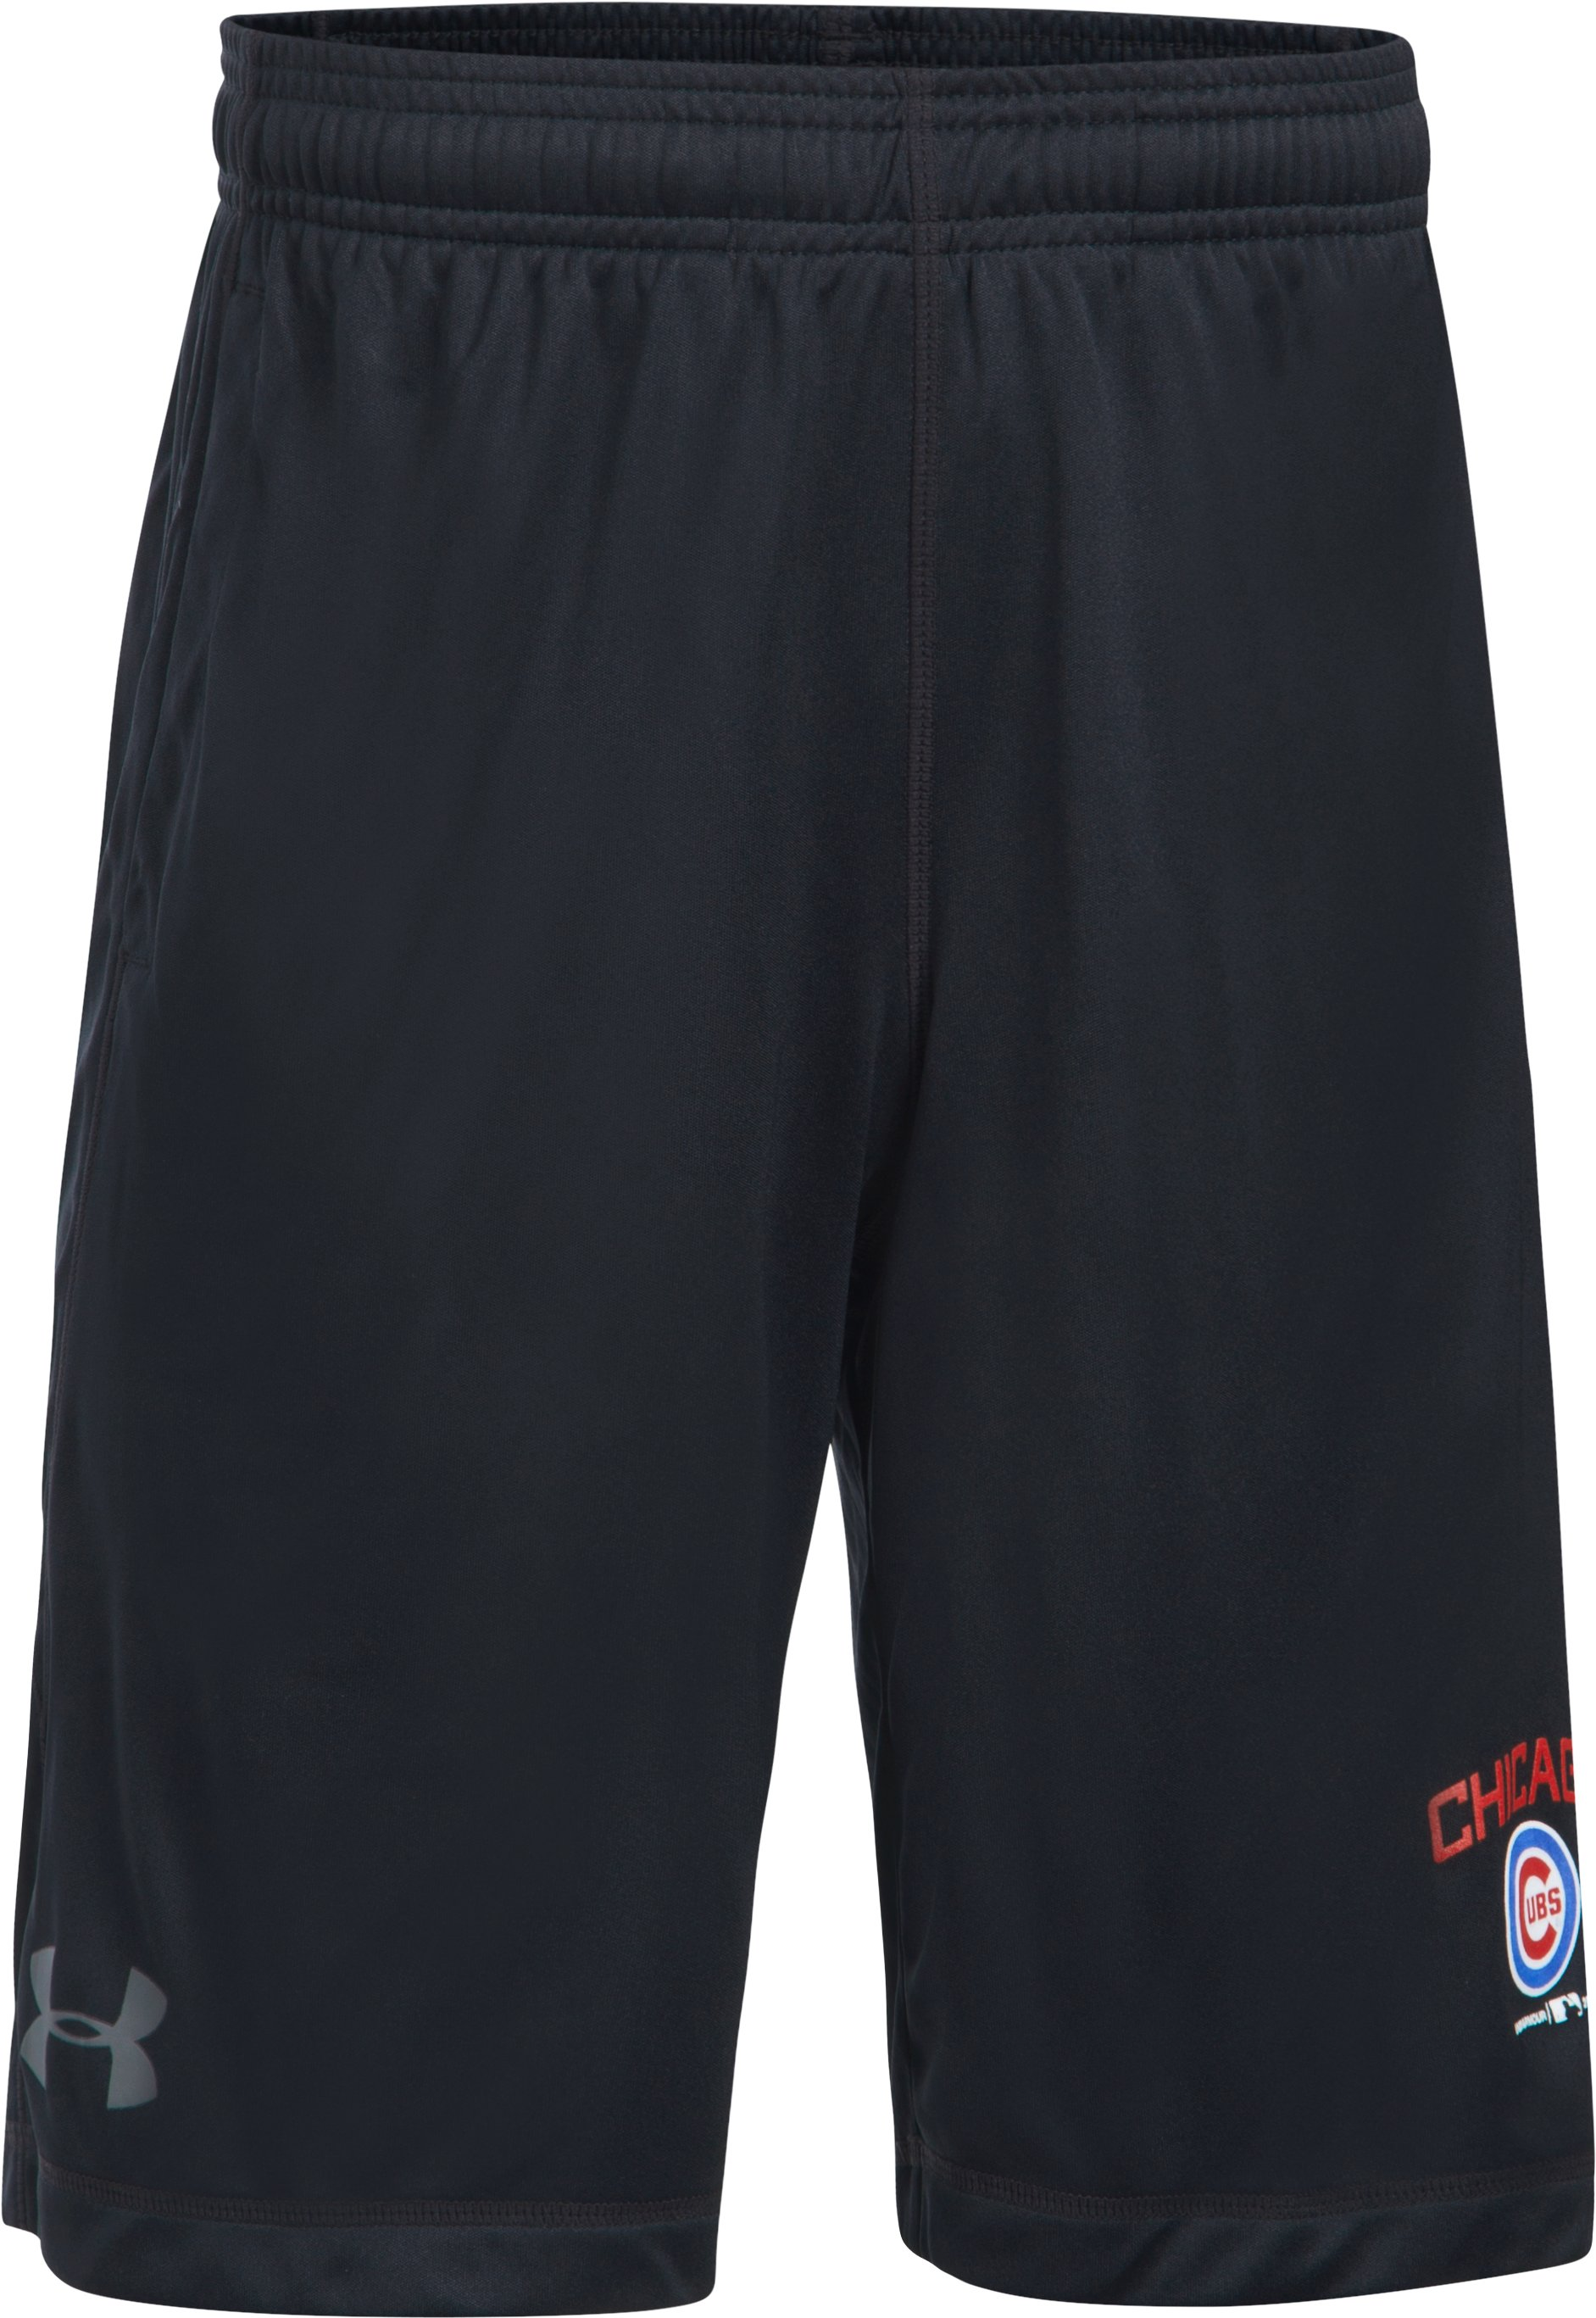 Boys' Chicago Cubs Training Shorts, Black ,